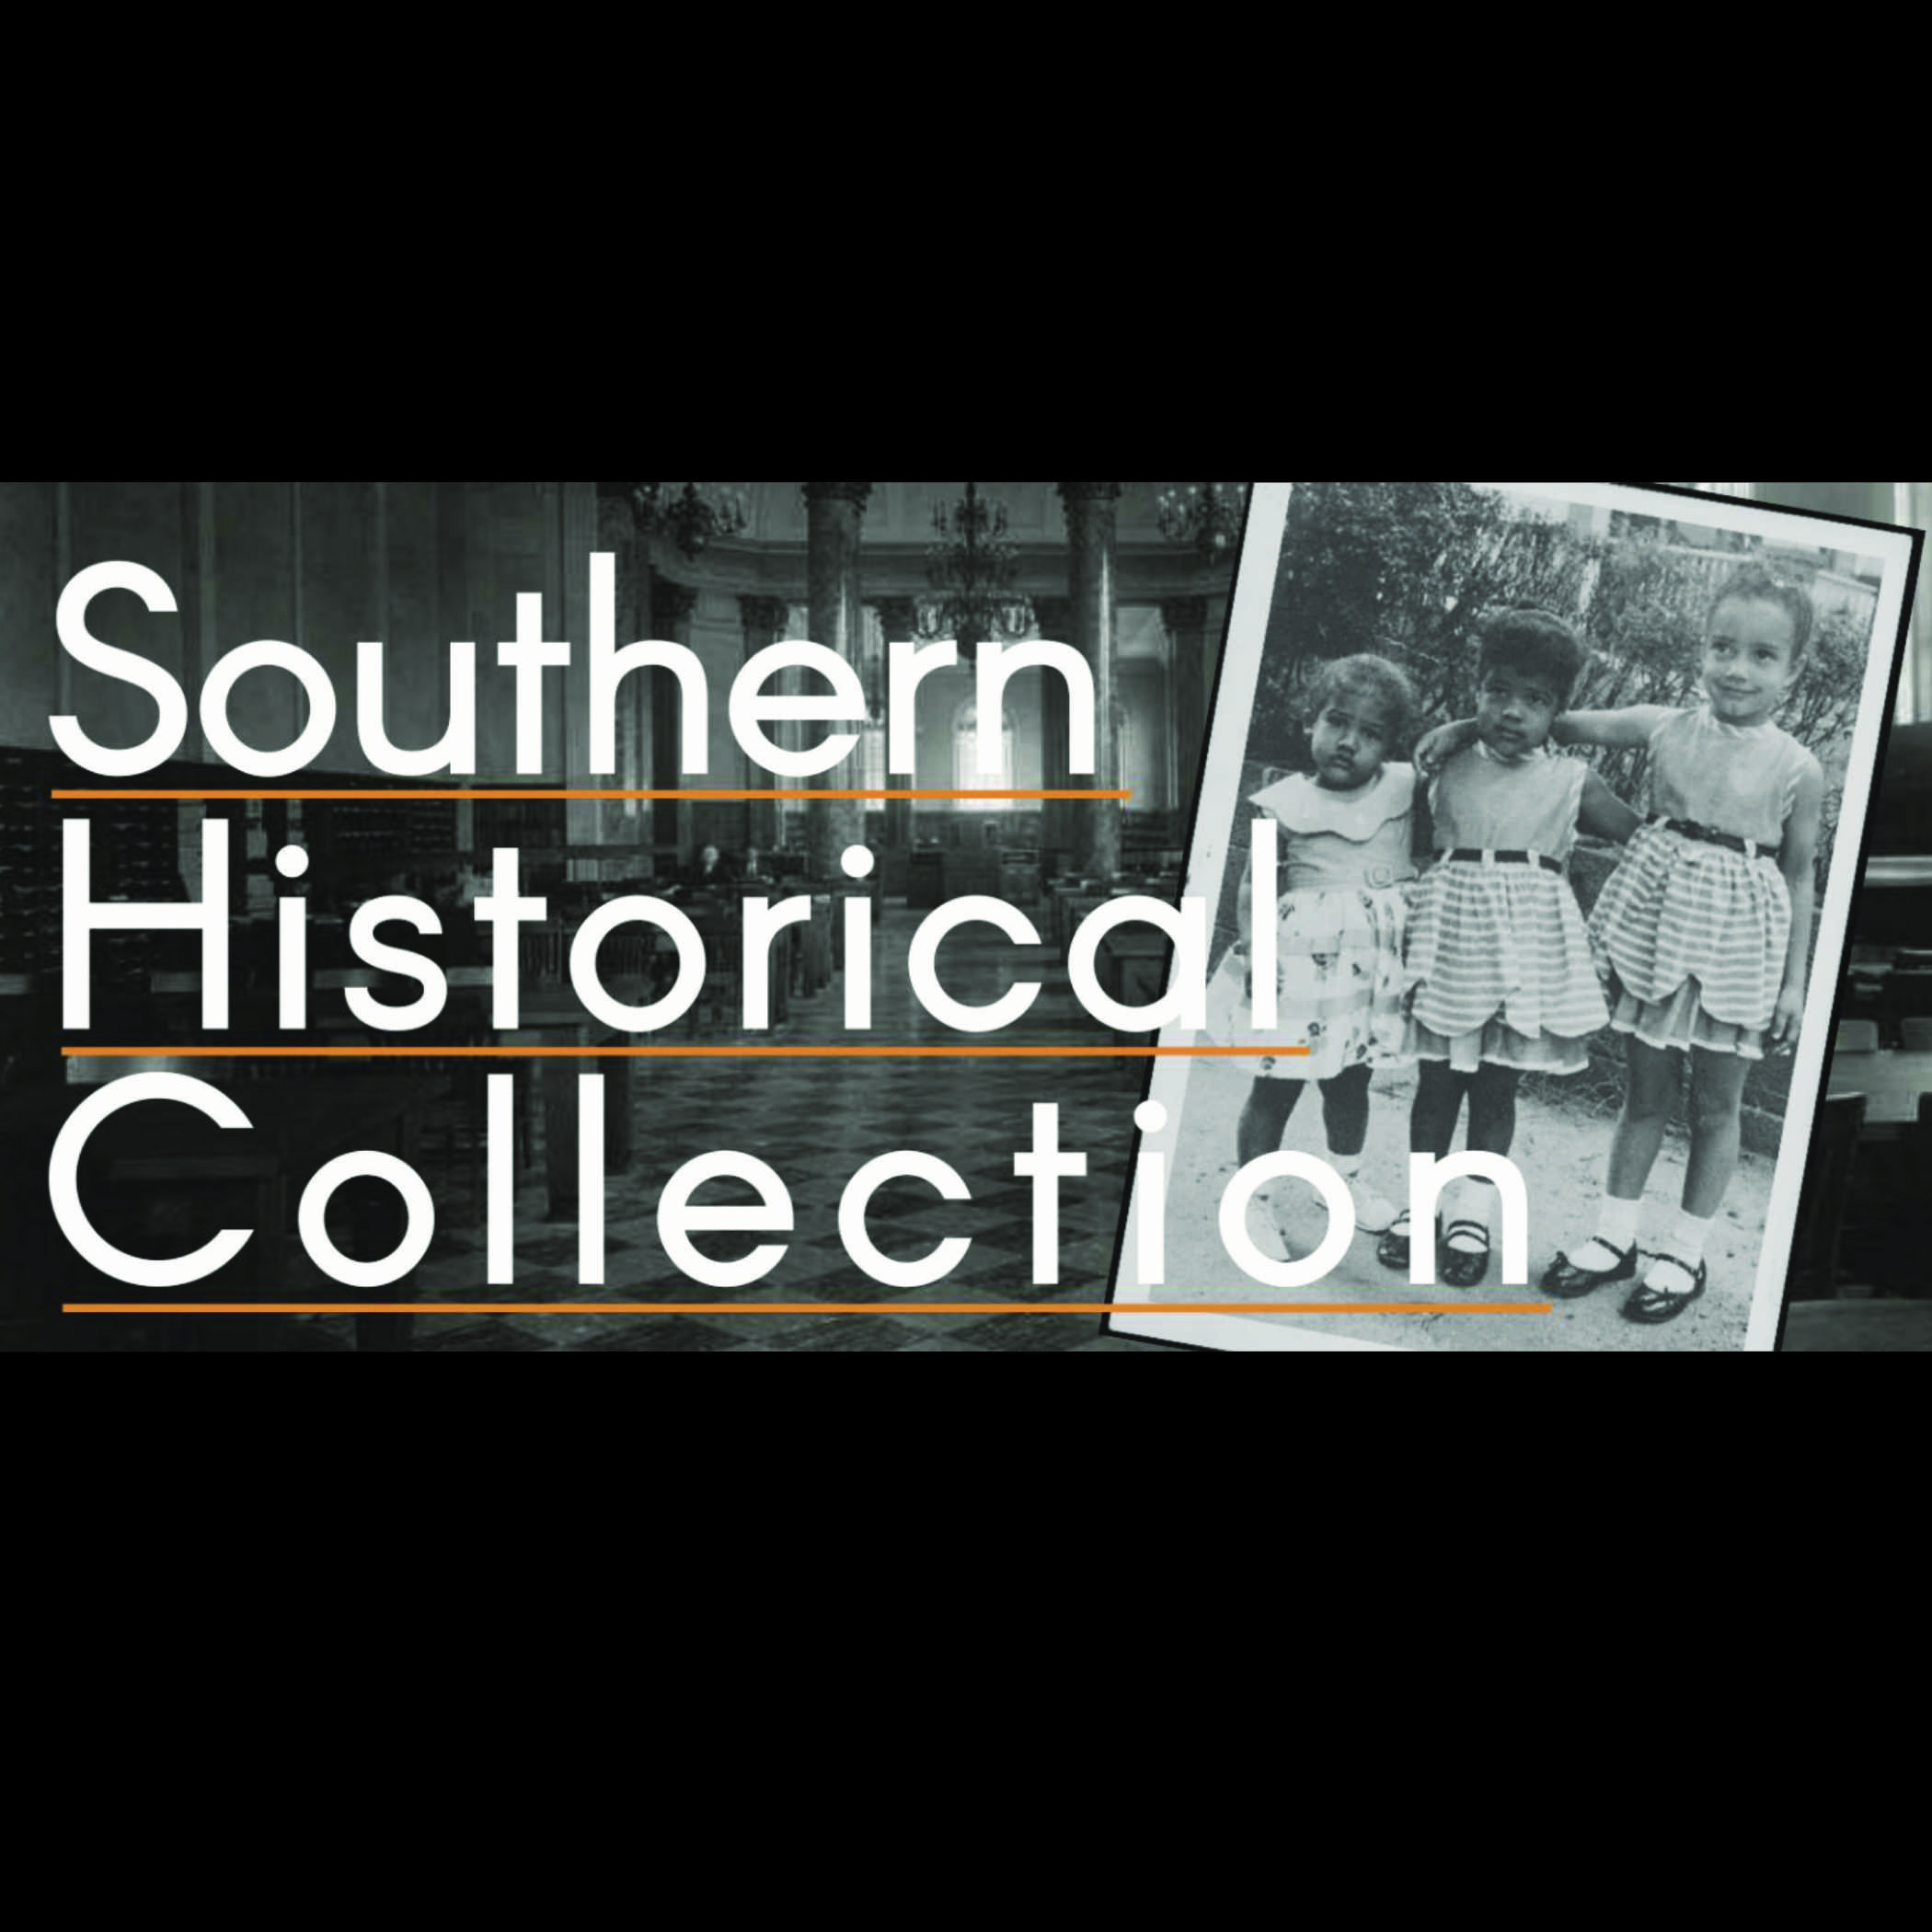 logo for the Southern Historical Collection at UNC Chapel Hill